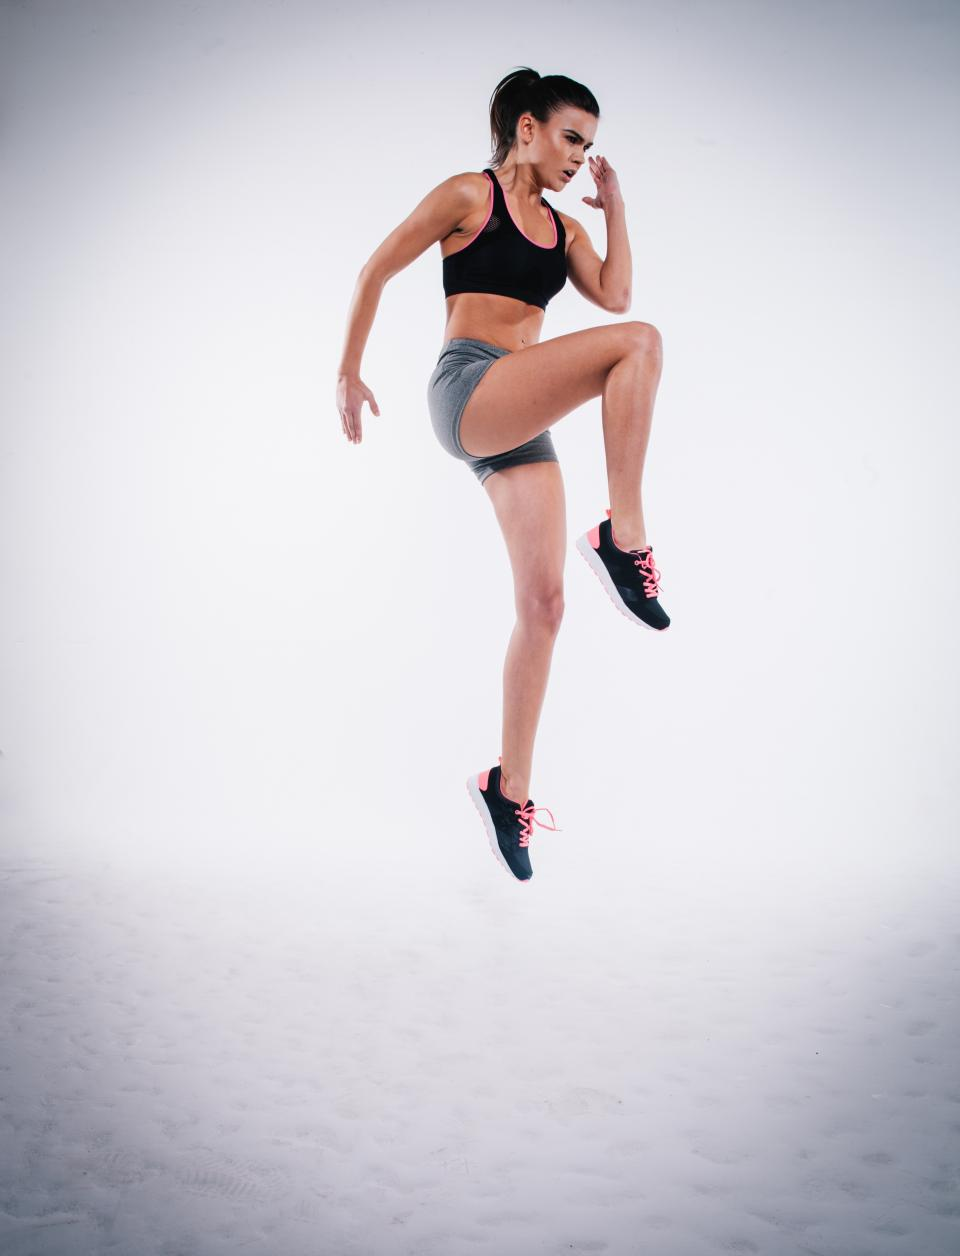 people, woman, exercise, fitness, health, sports, muscles, healthy, fit, shoes